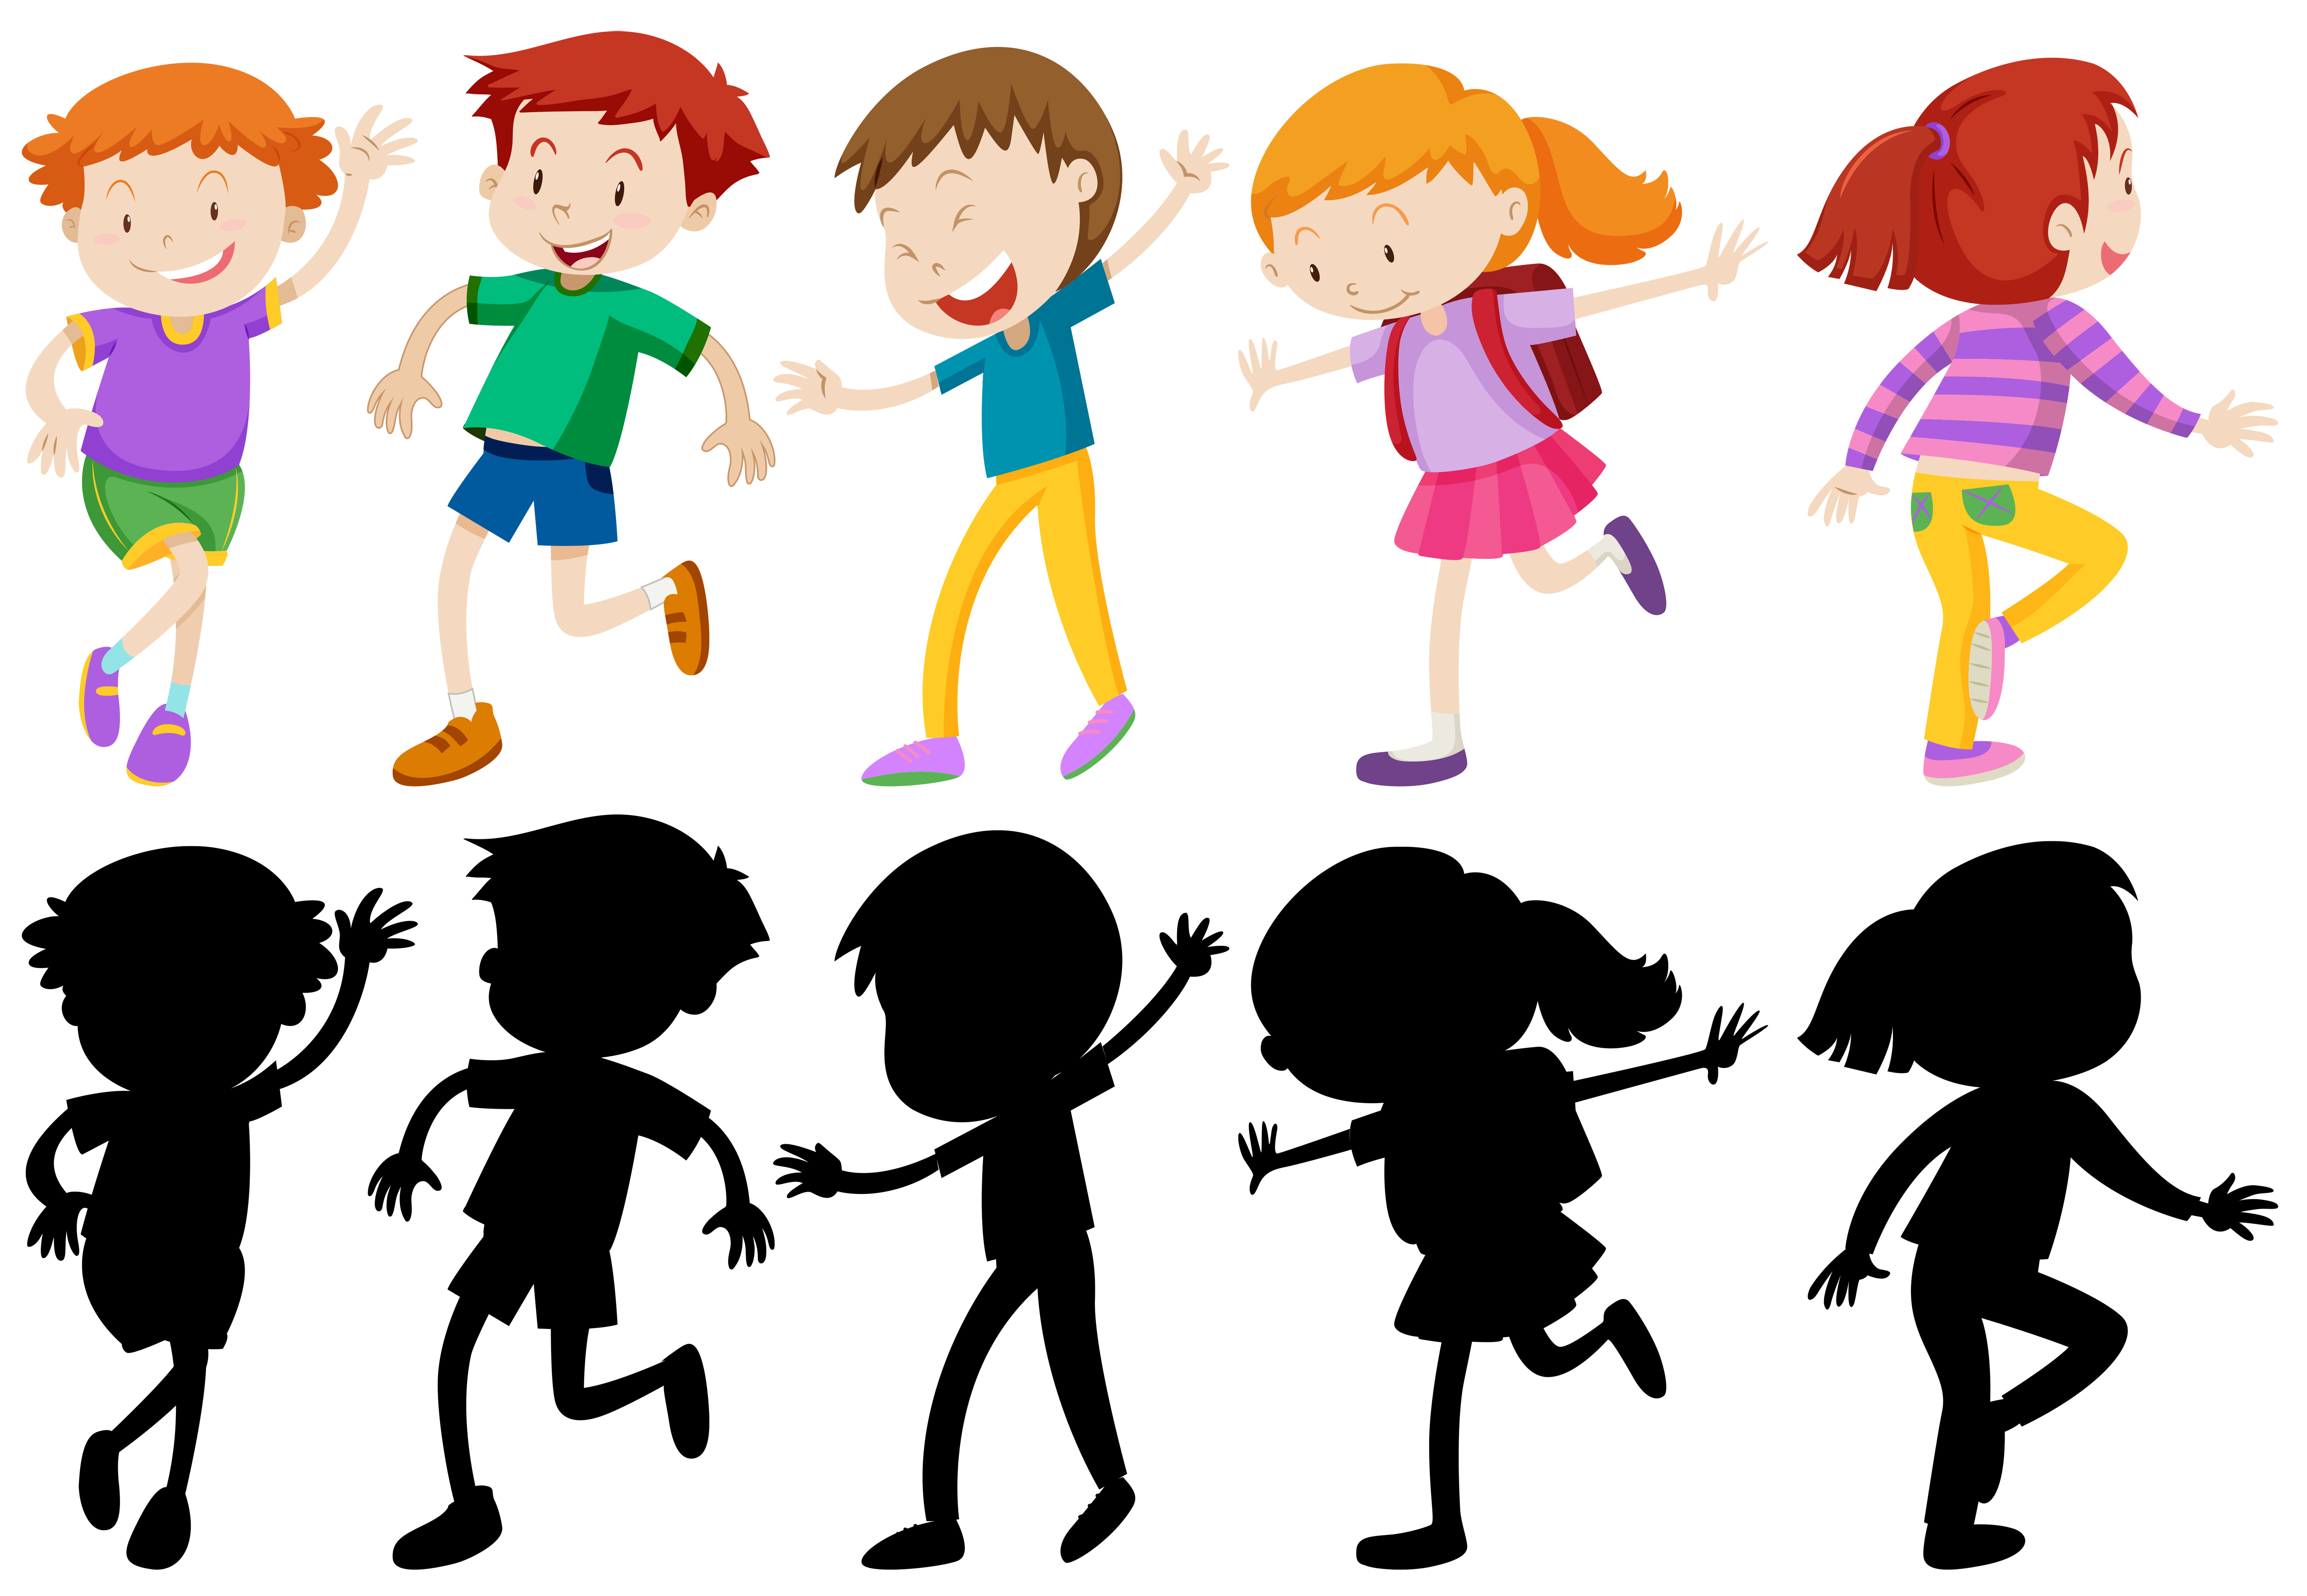 Children characters in silhouette and colored - Download ...